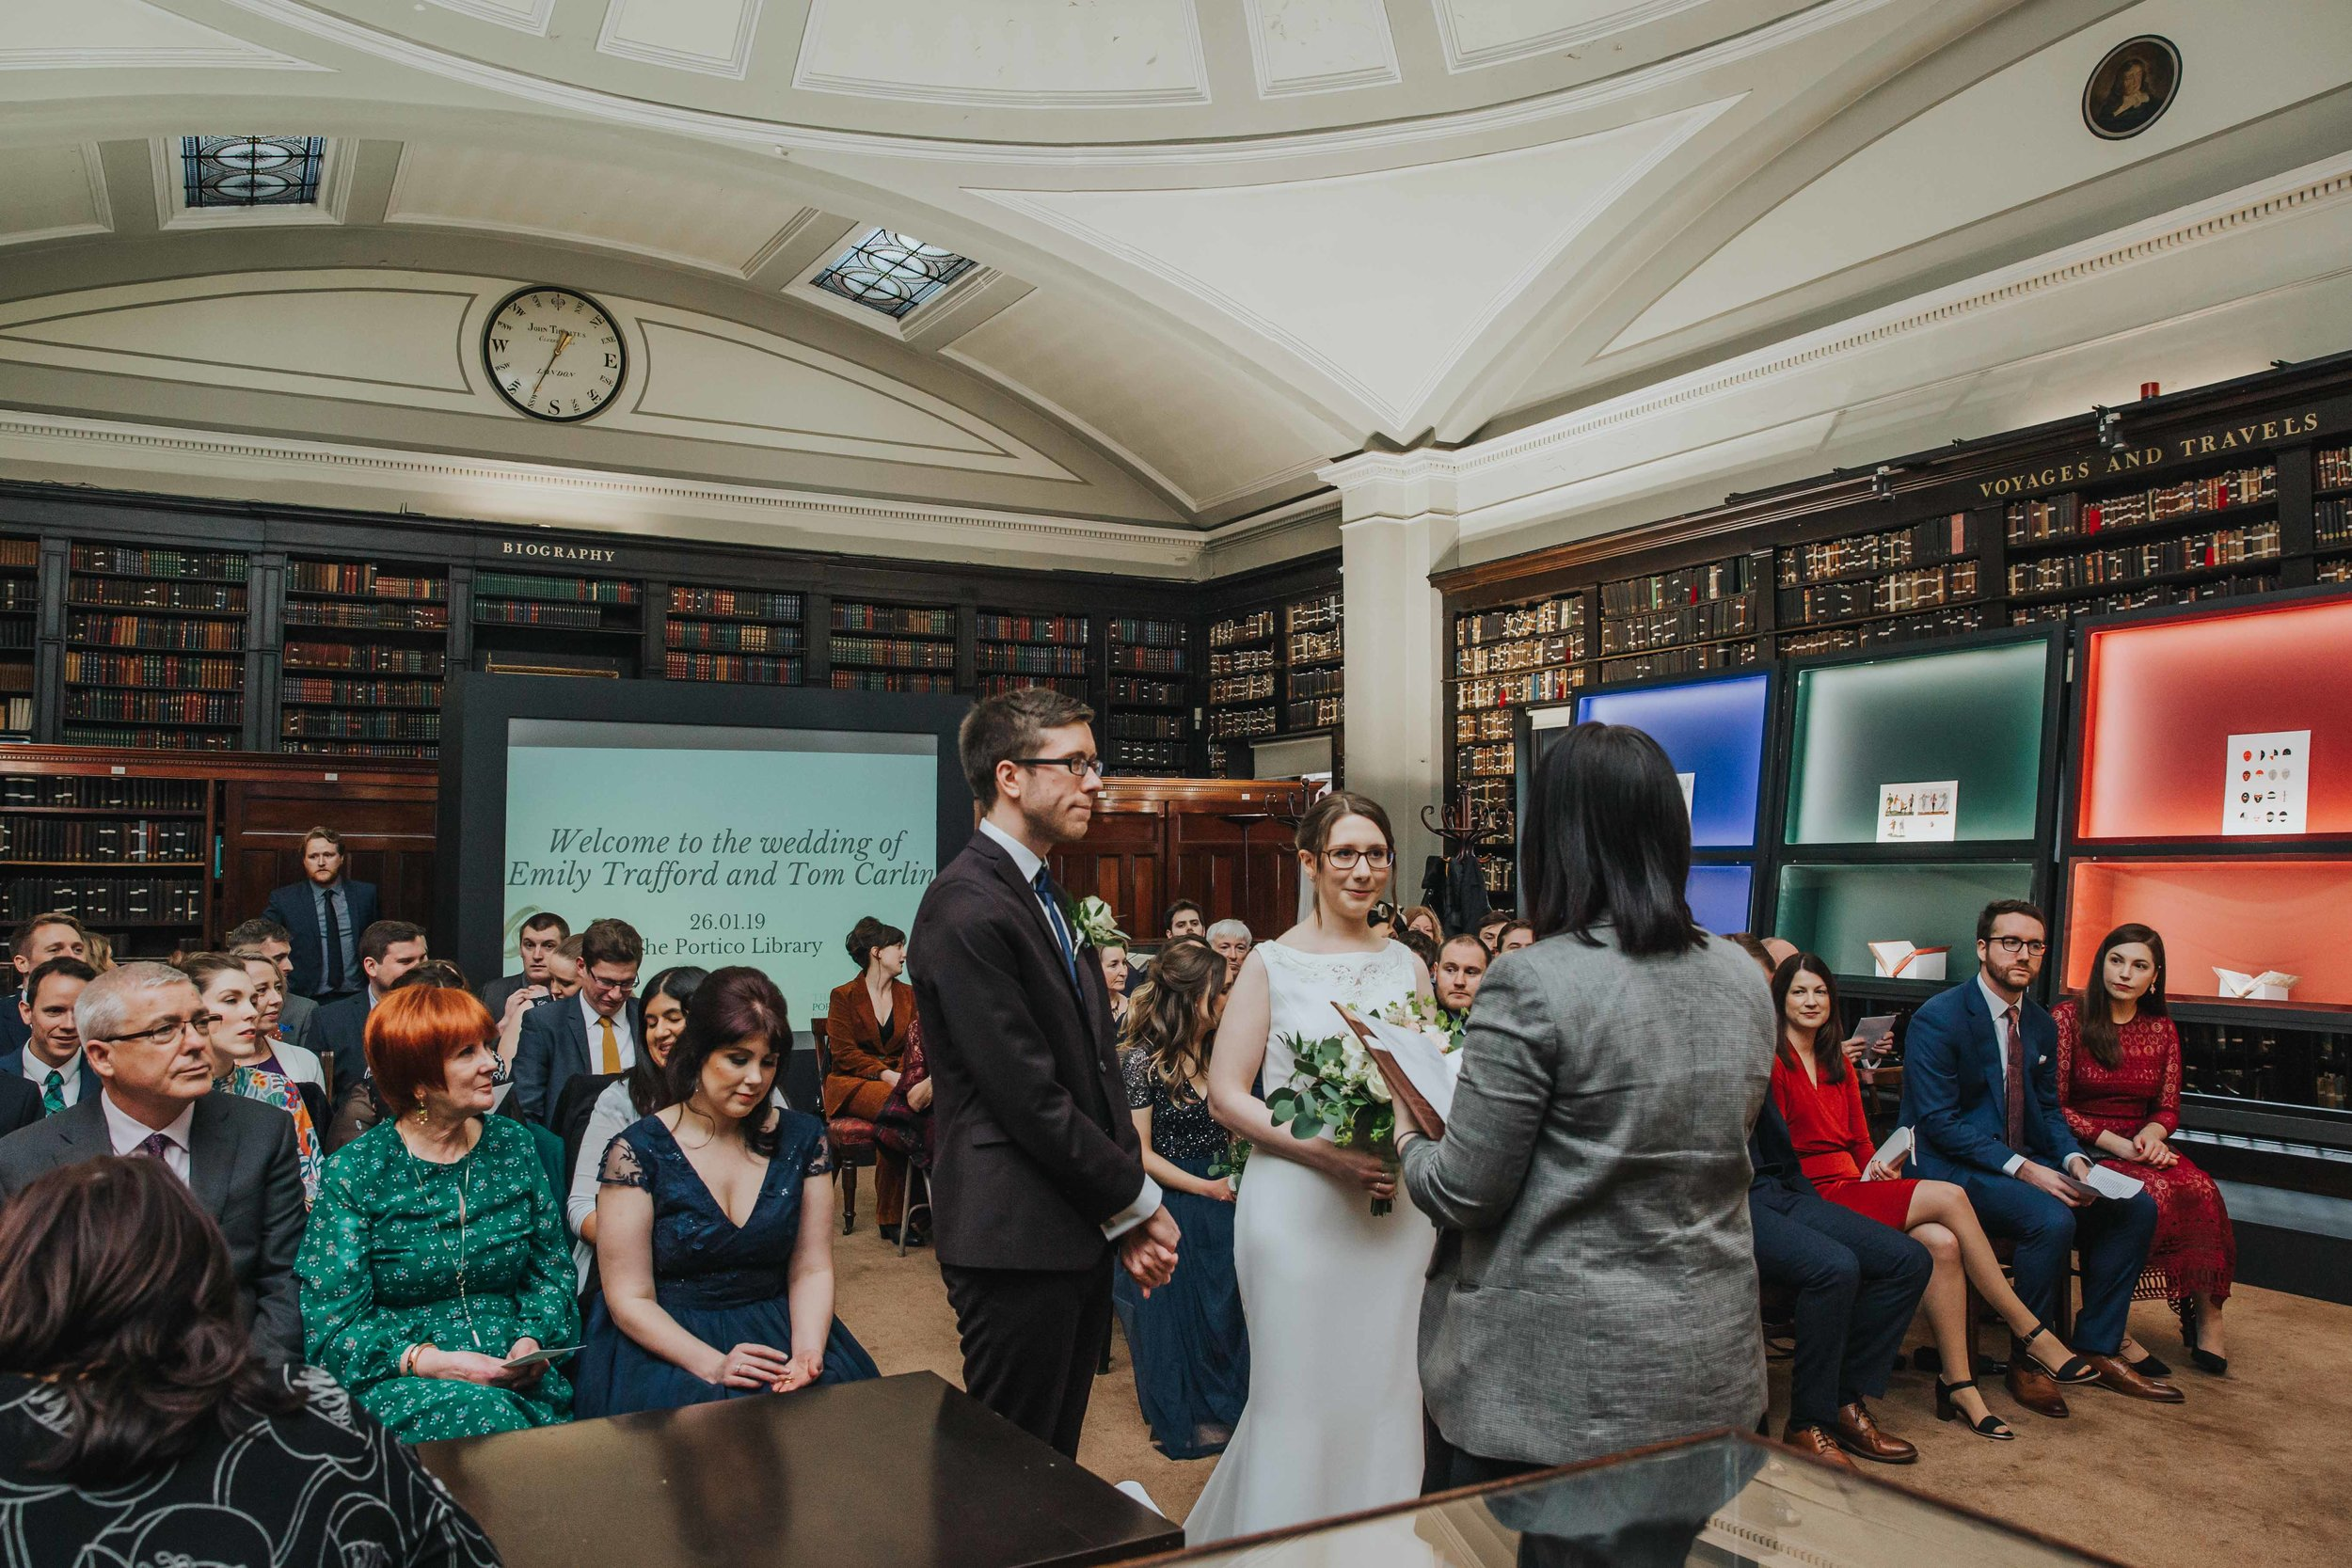 Wedding ceremony at The Portico Library